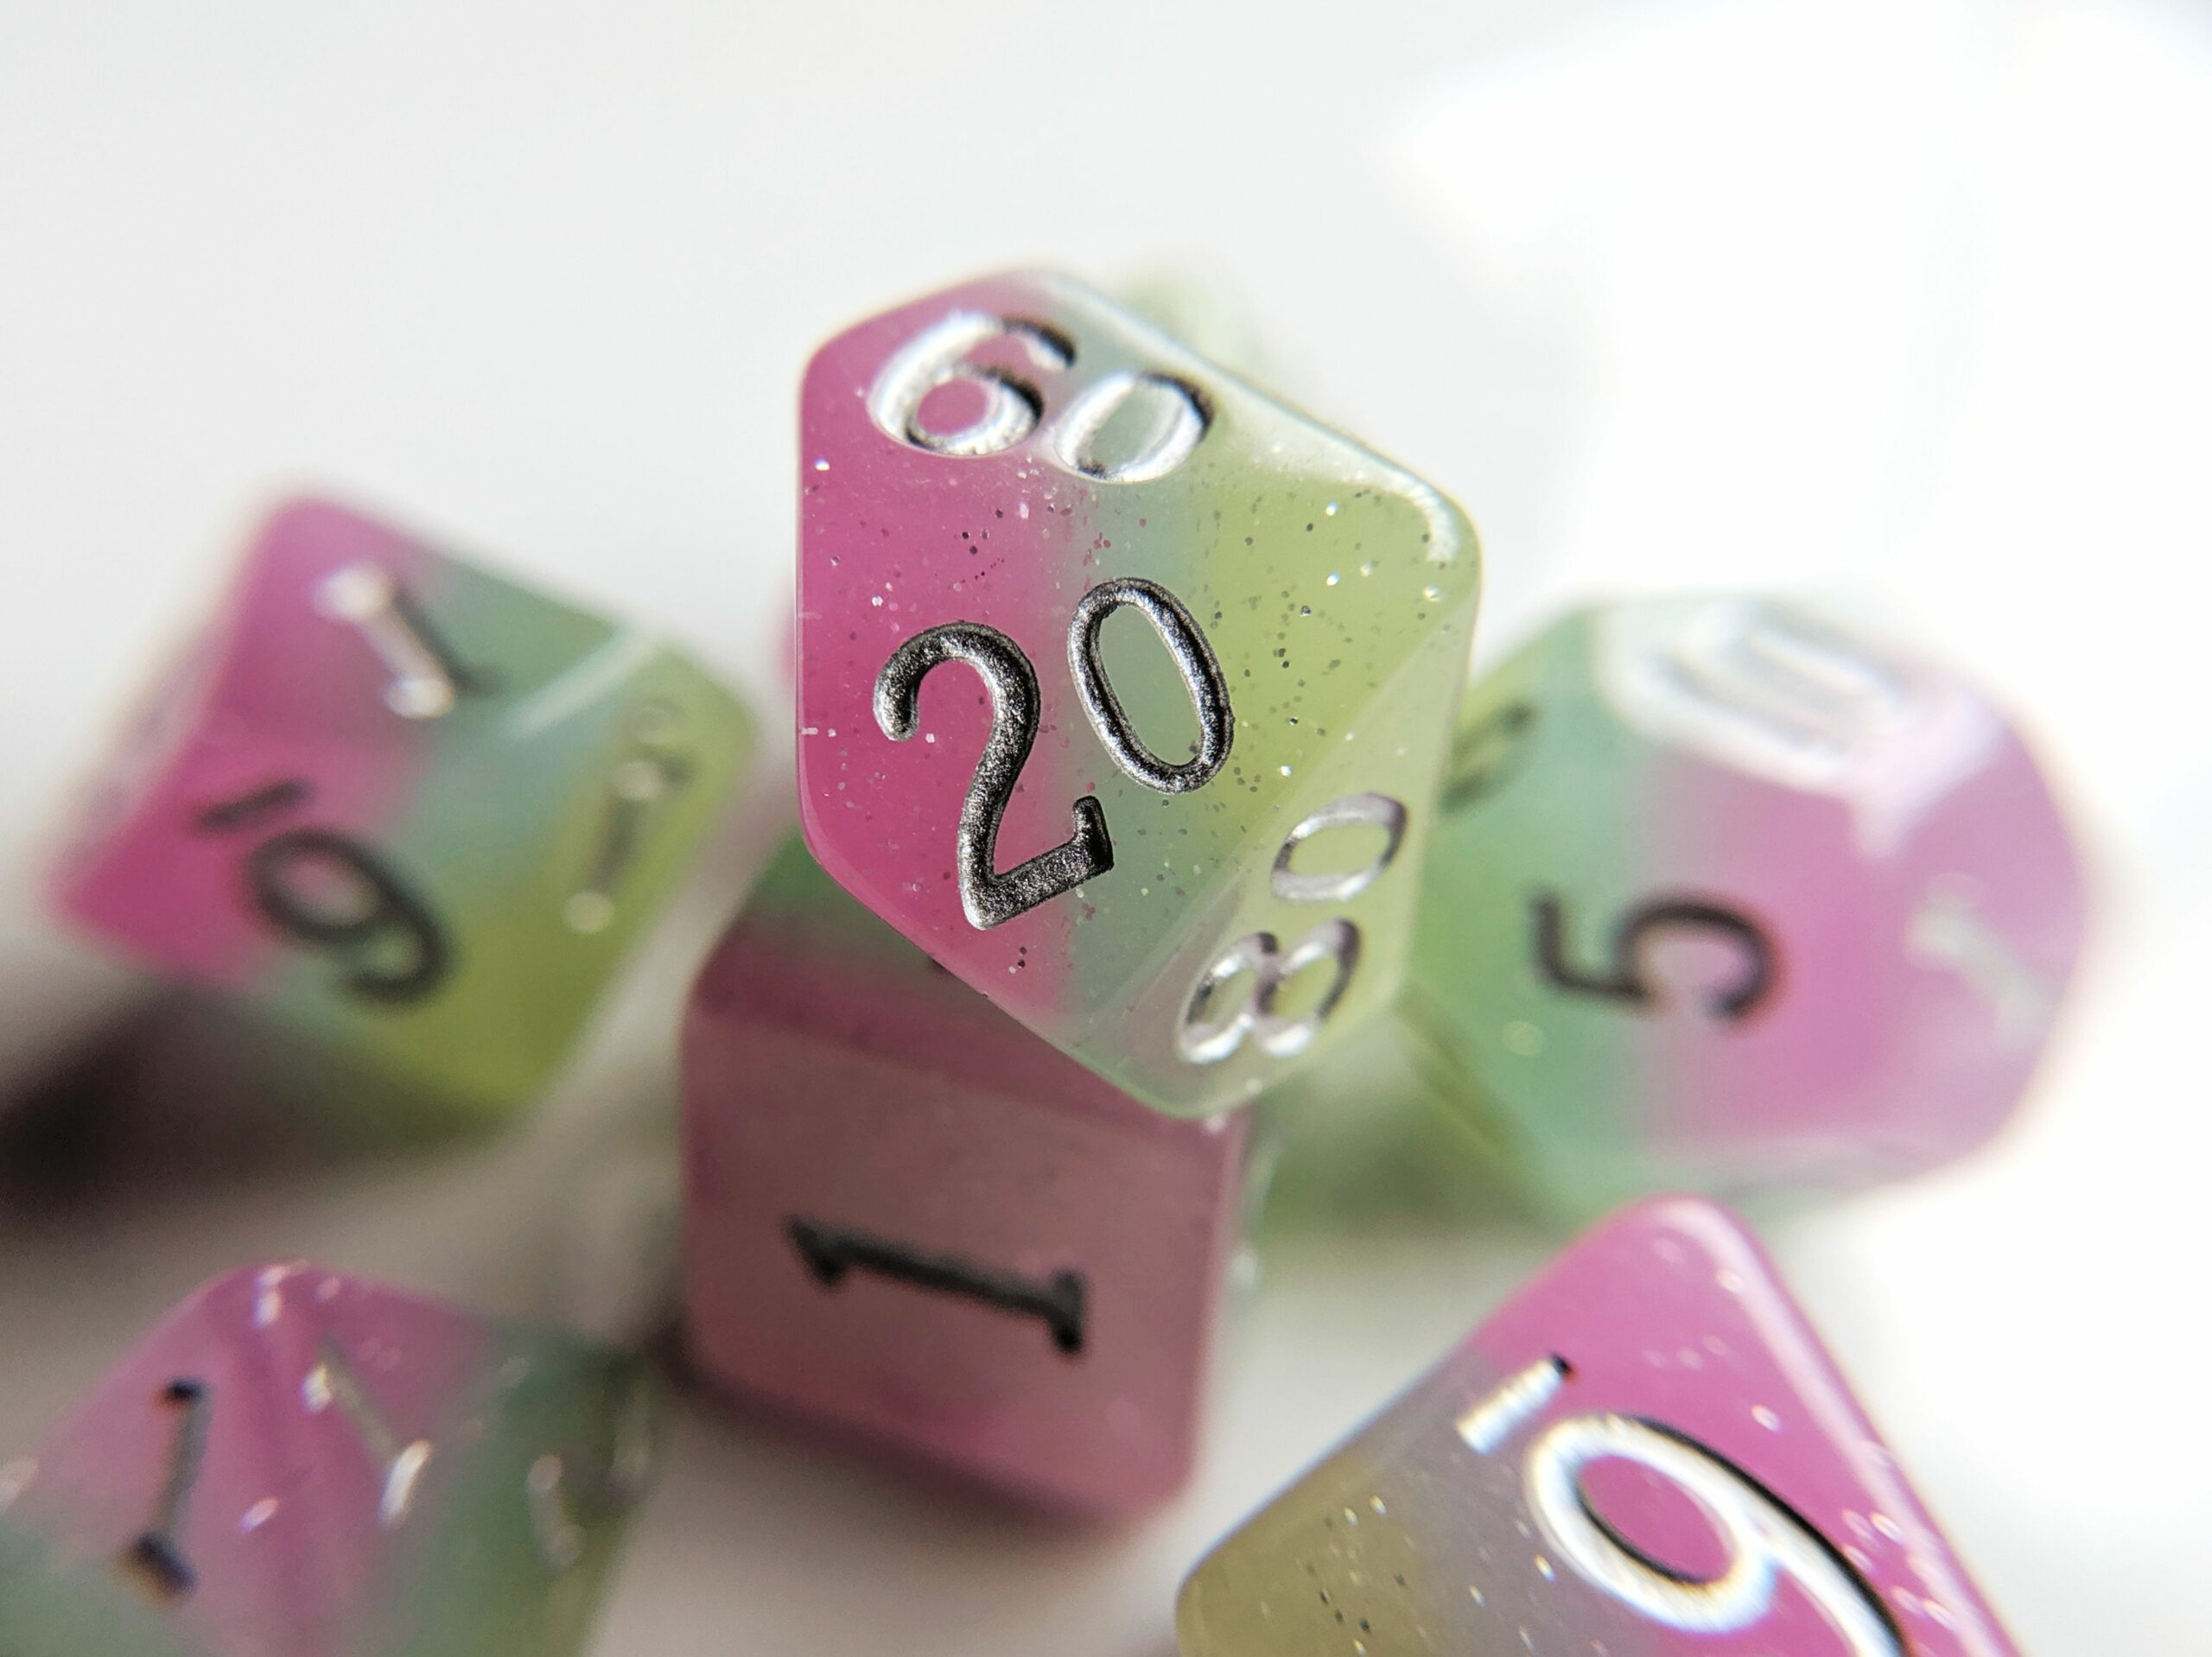 spring wind elemental dice